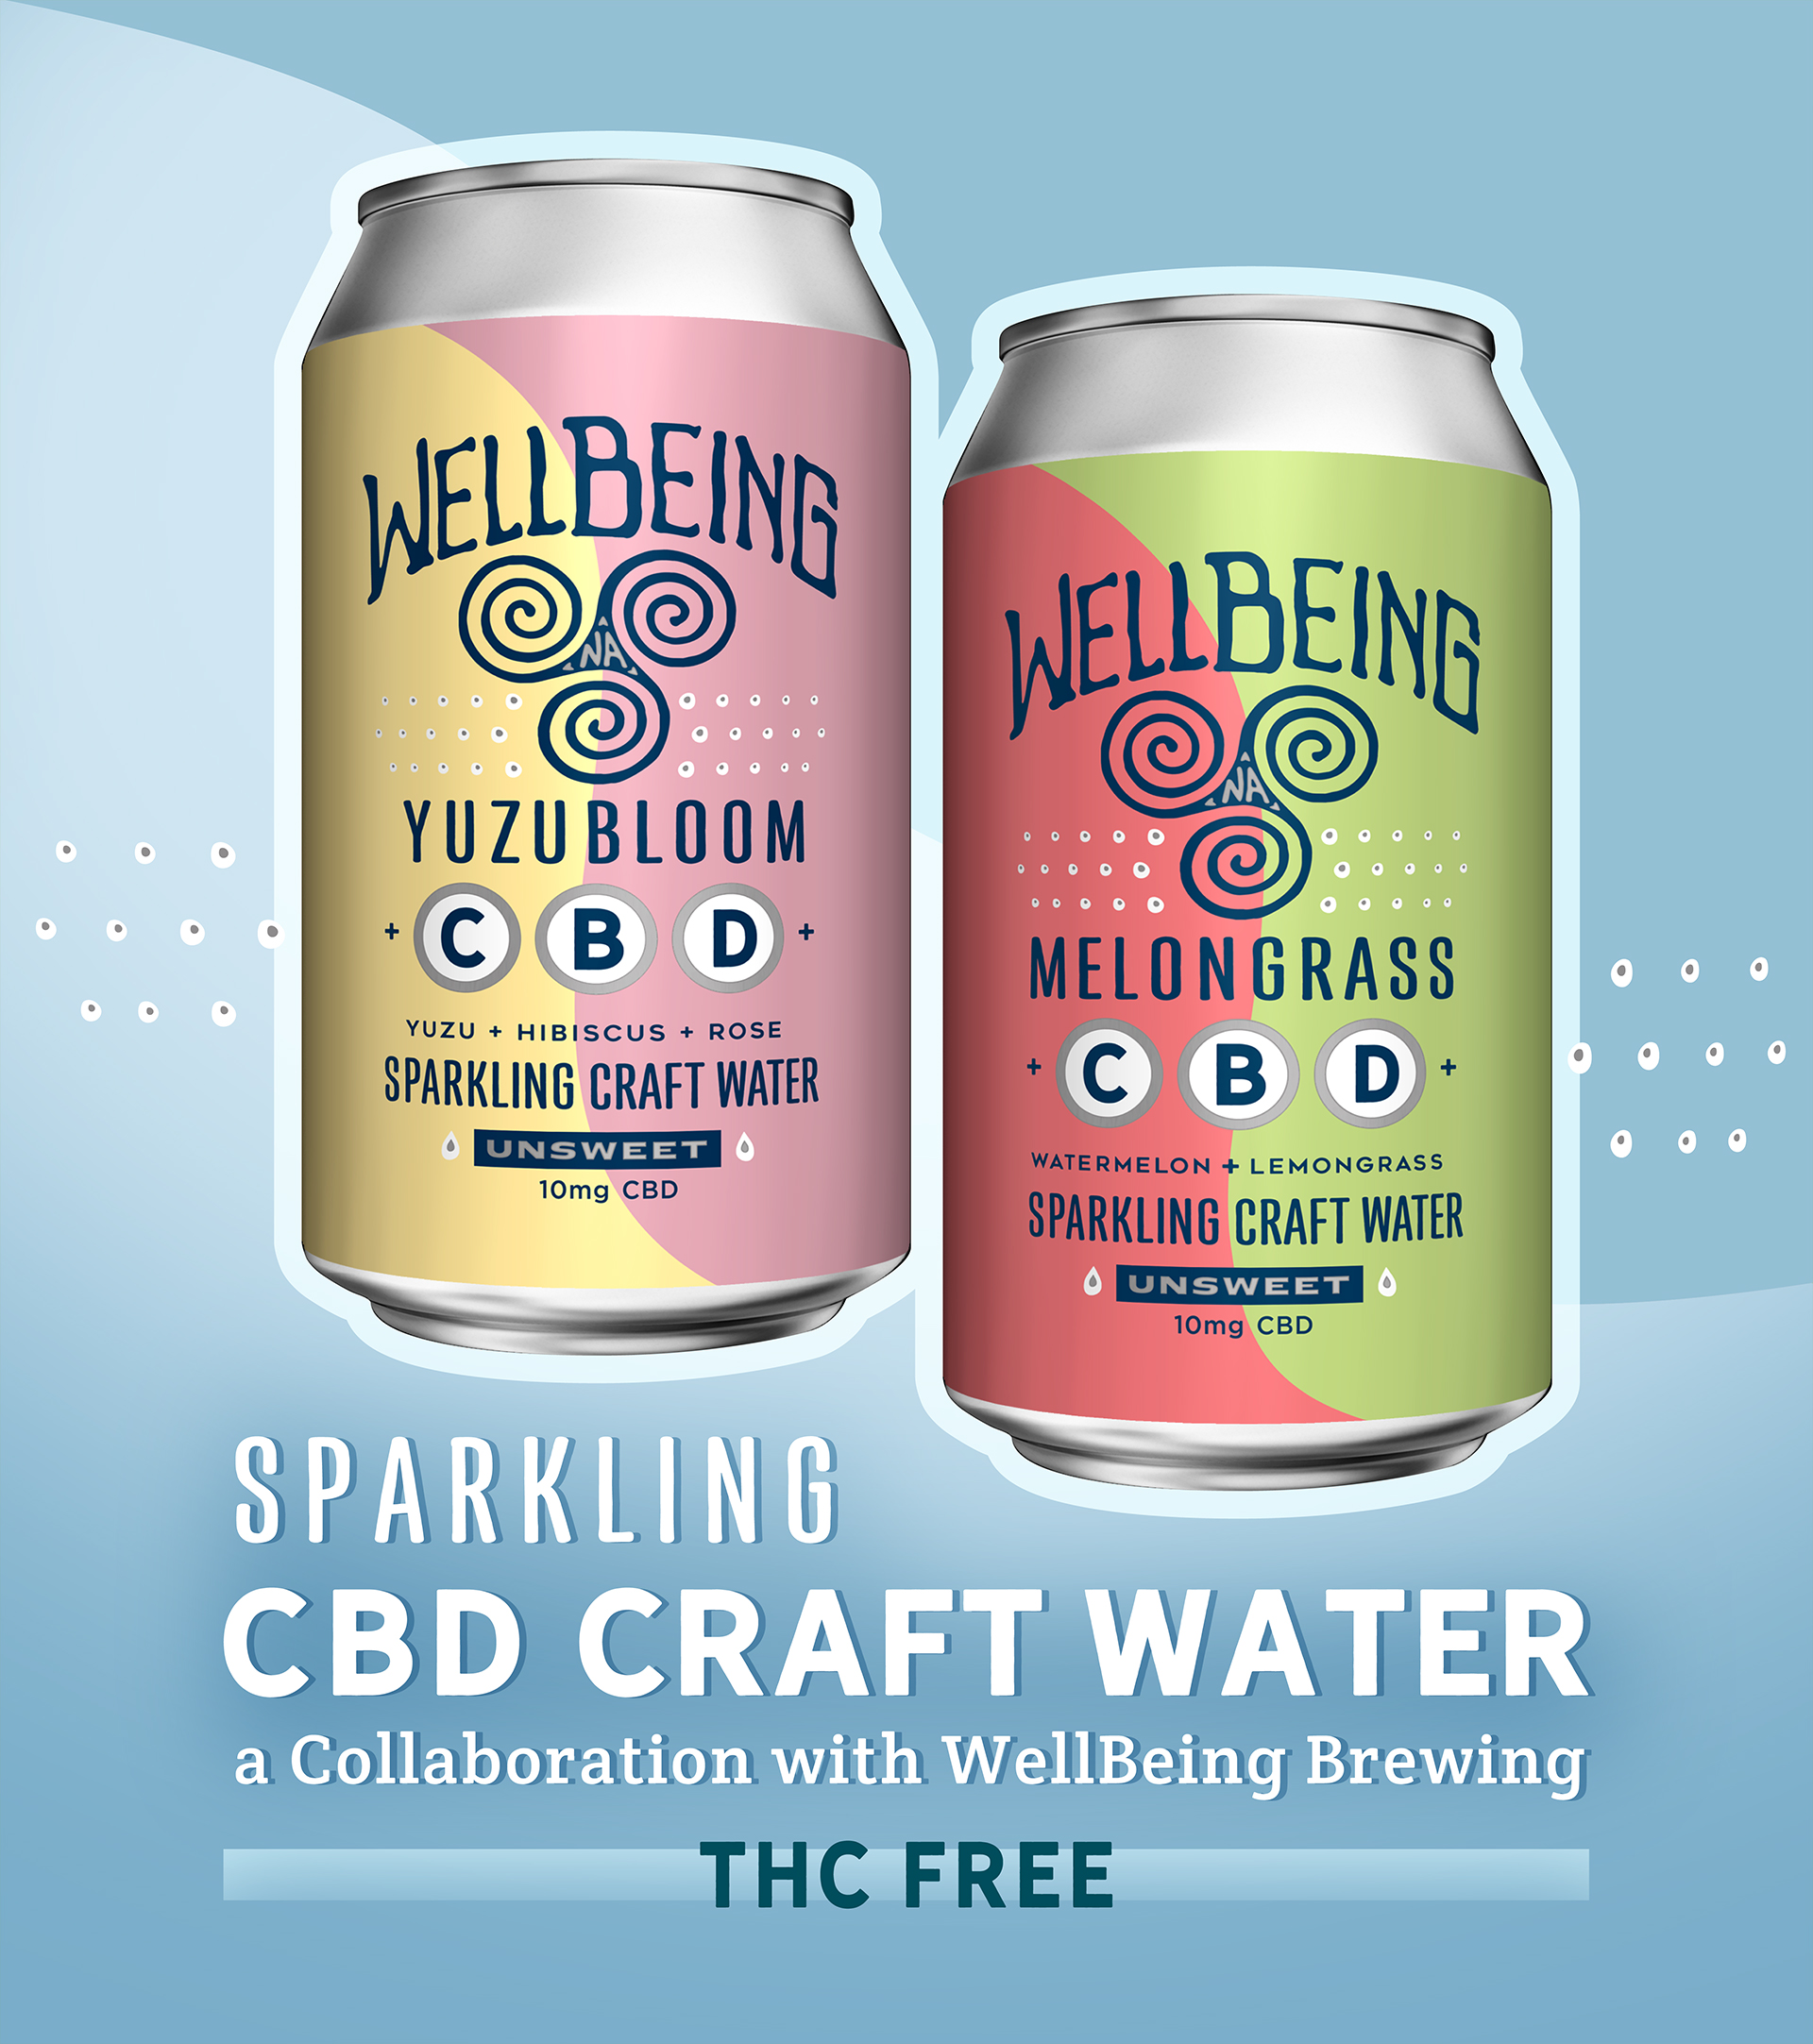 WellBeing CBD Sparkling Craft Waters